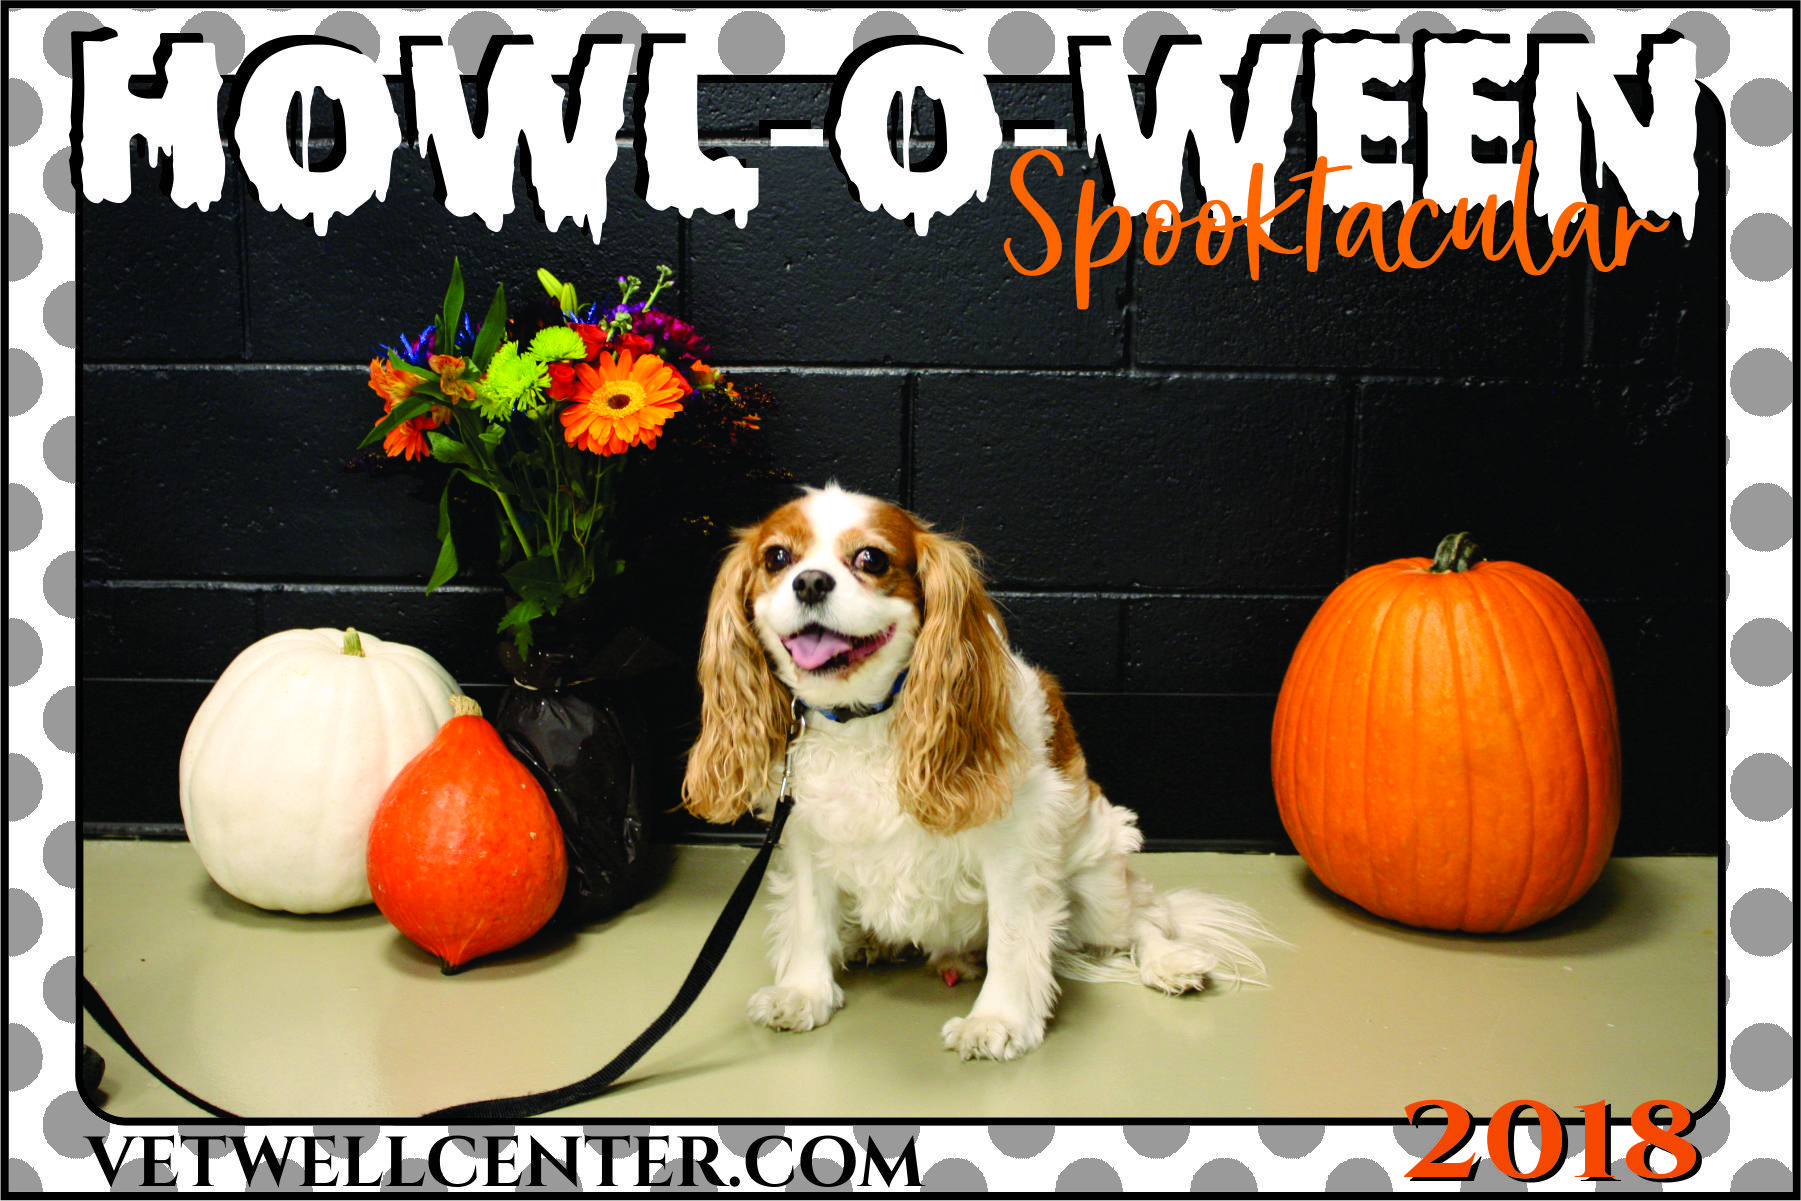 HowlOWeen Spooktacular Pet Photos! Veterinary Wellness